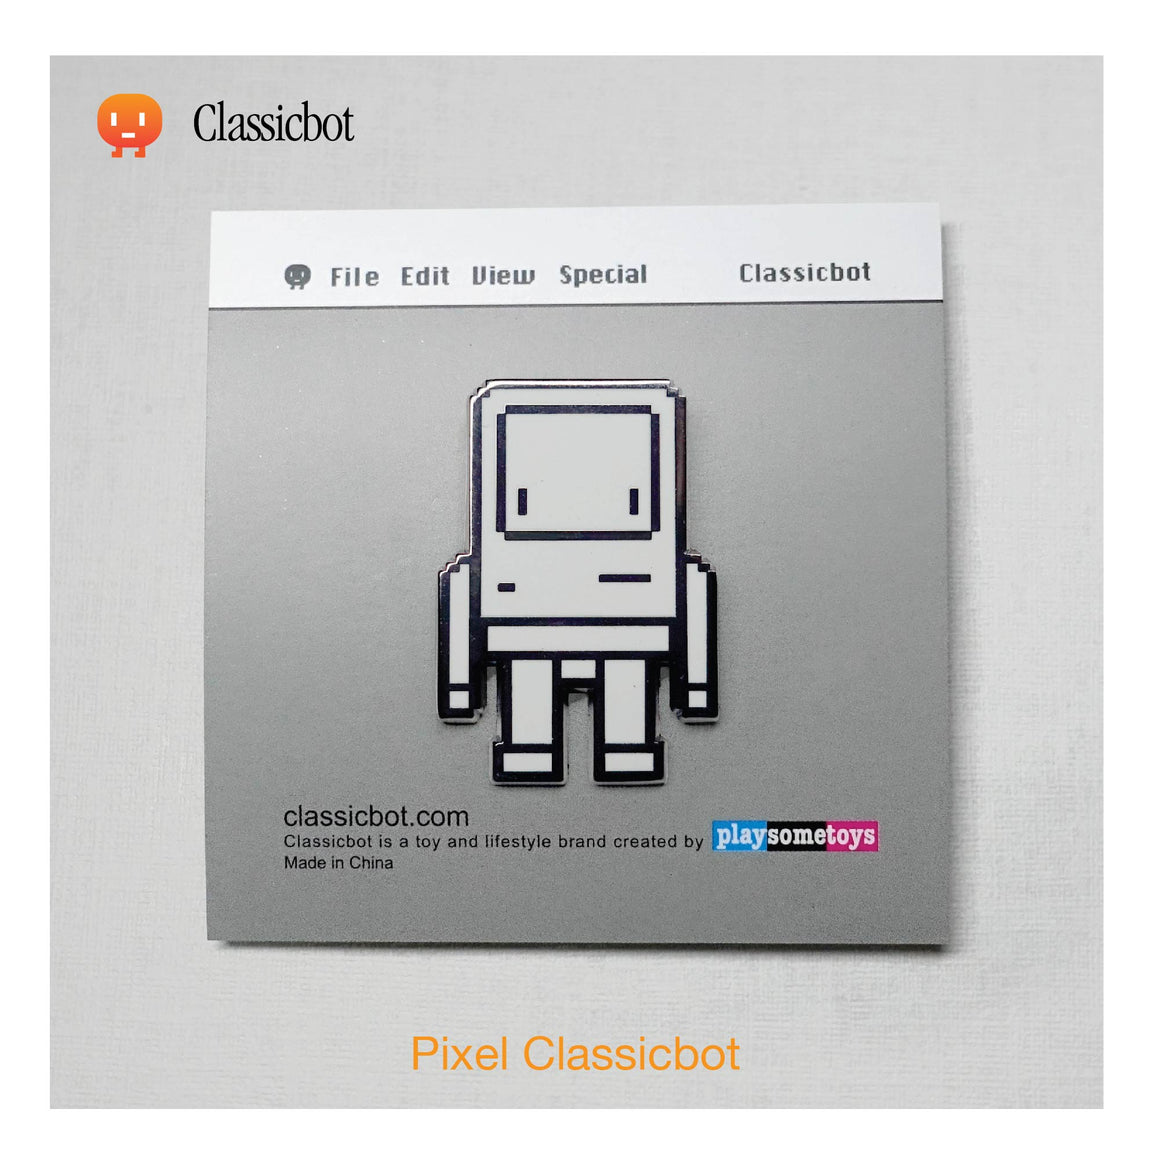 Pixel Classicbot Enamel Pin by Classicbot